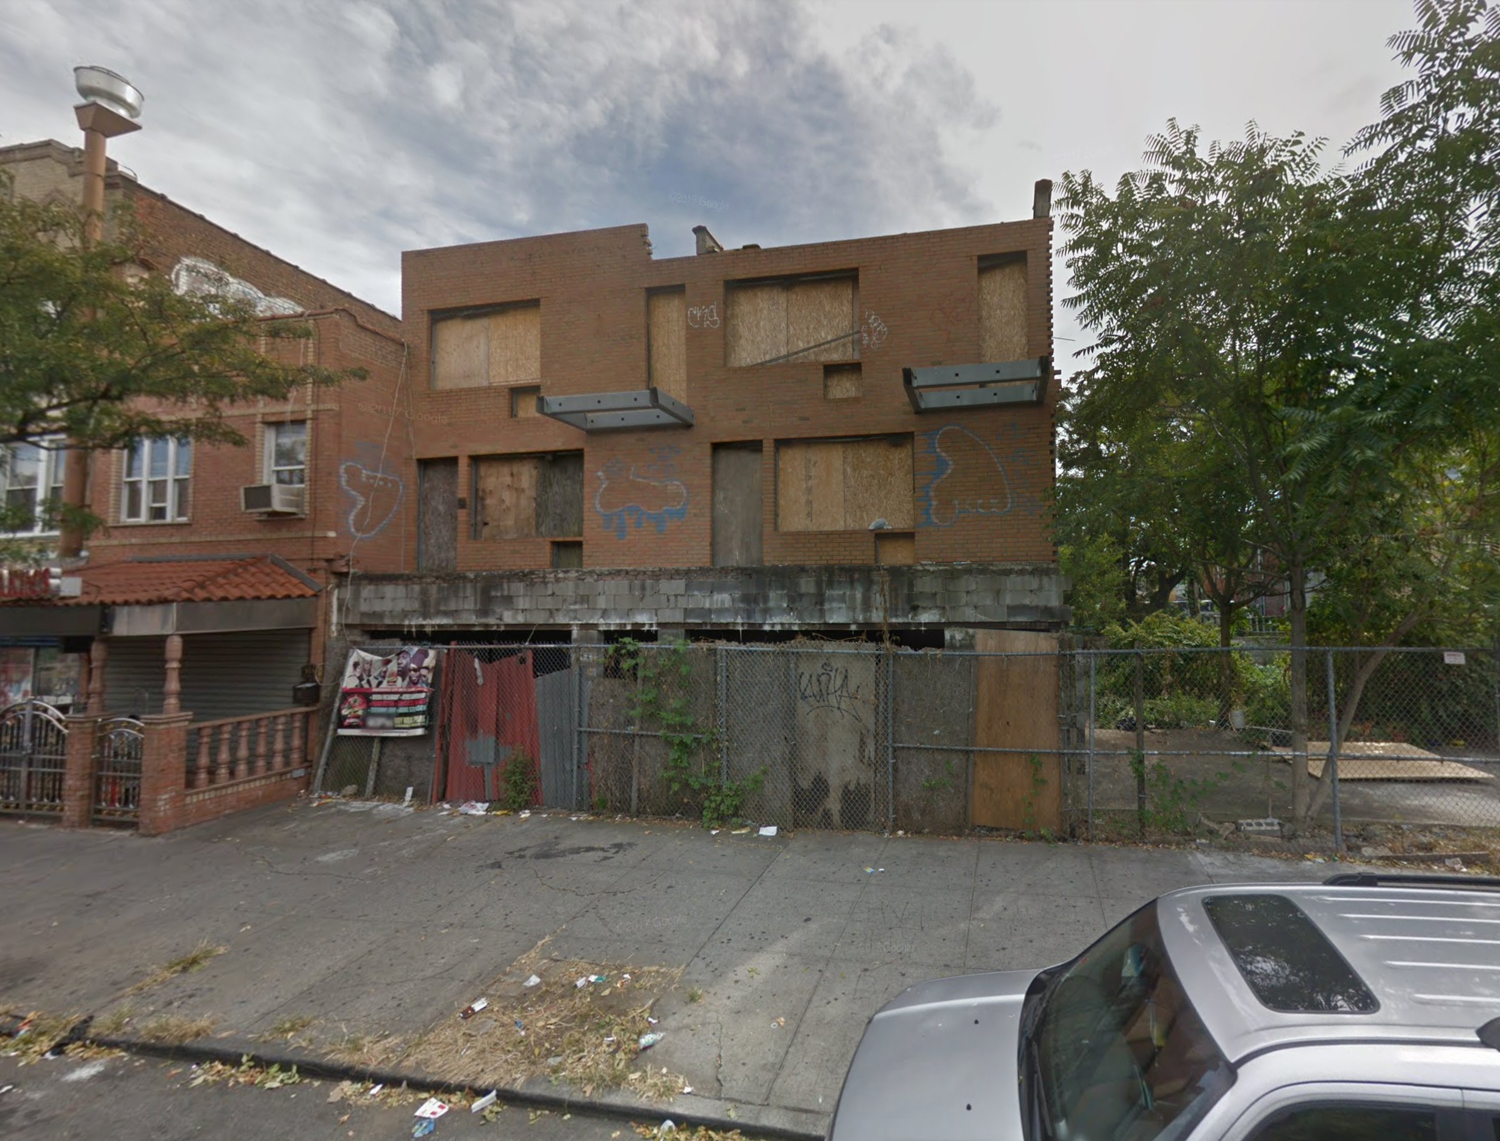 510, 512 New Lots Avenue, via Google Maps